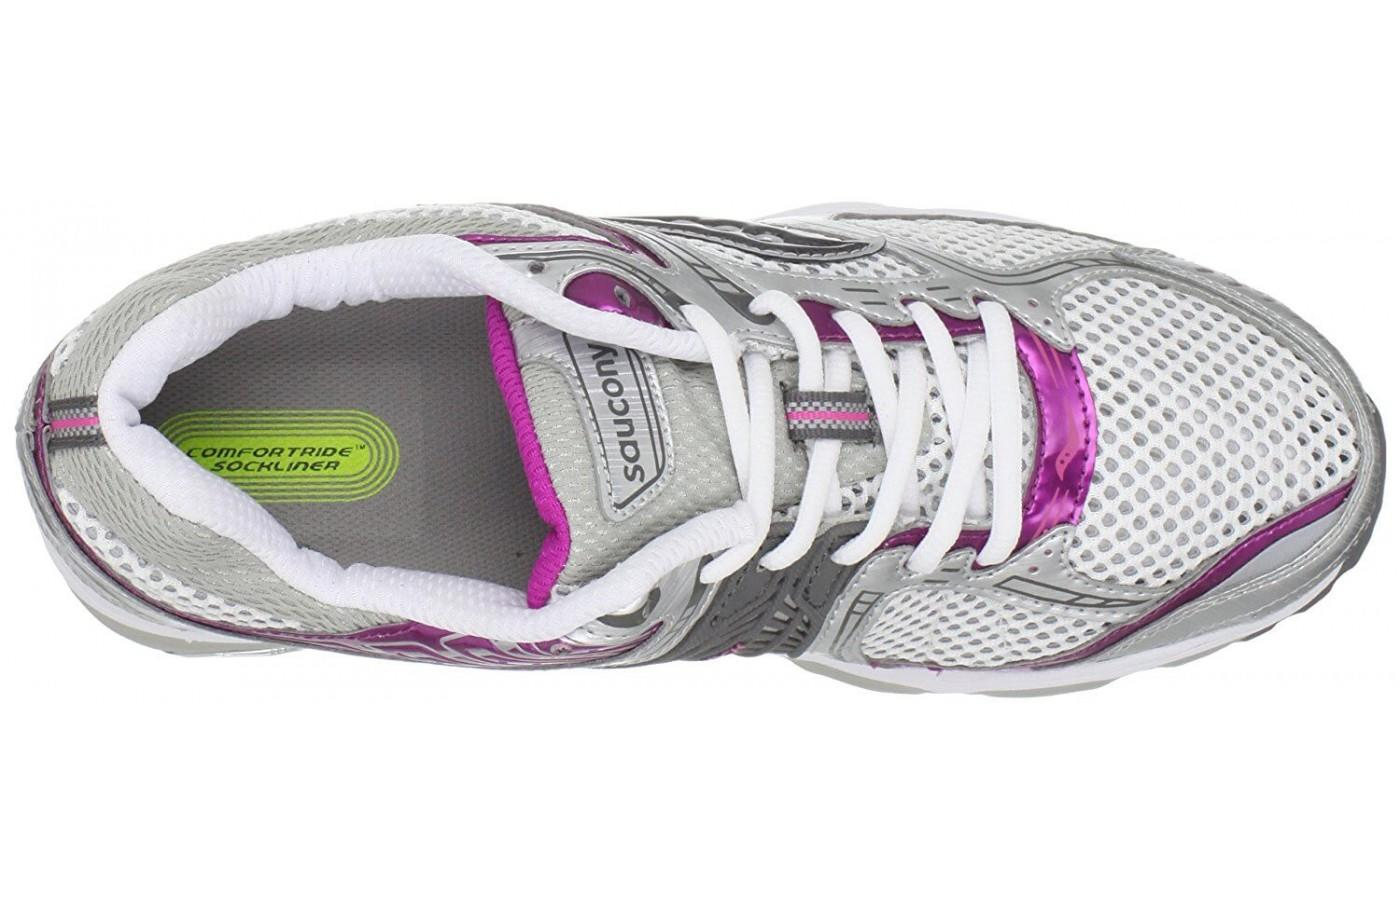 Saucony Stabil CS2 has a breathable mesh upper